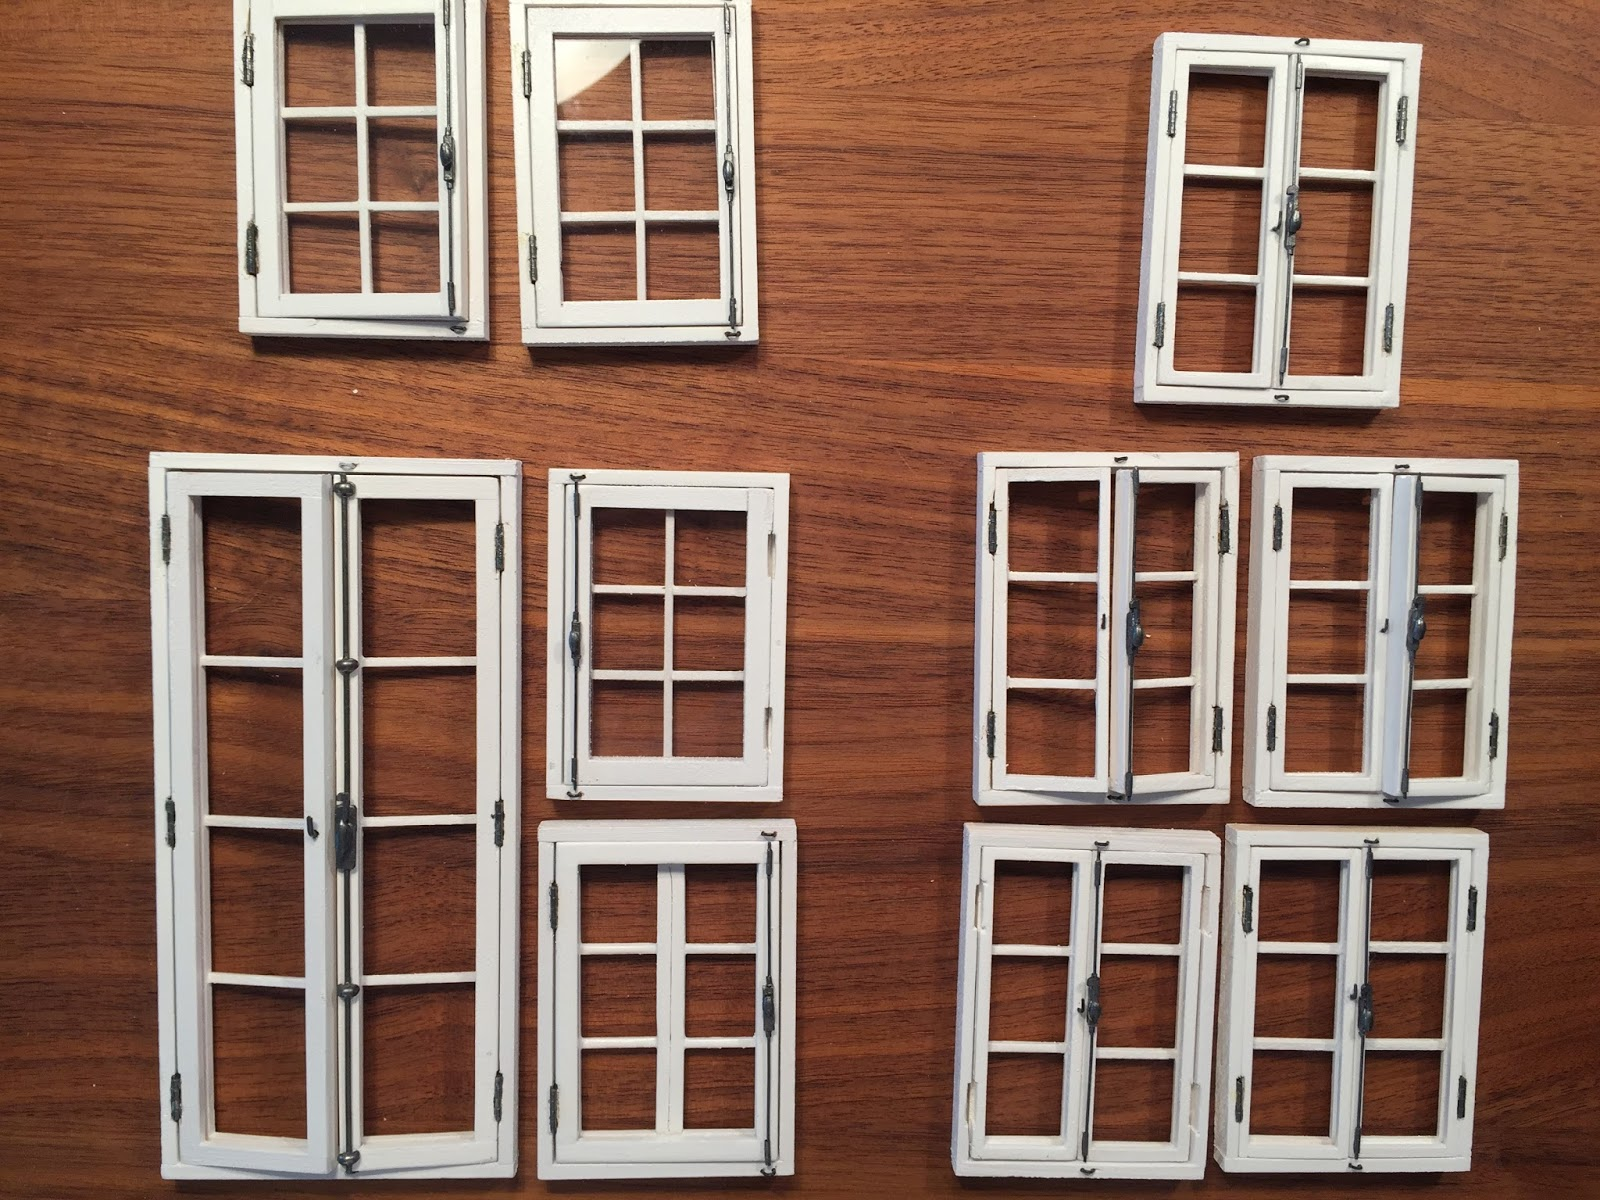 1 12 scale modern model houses revealing my new project for Window models for house photos